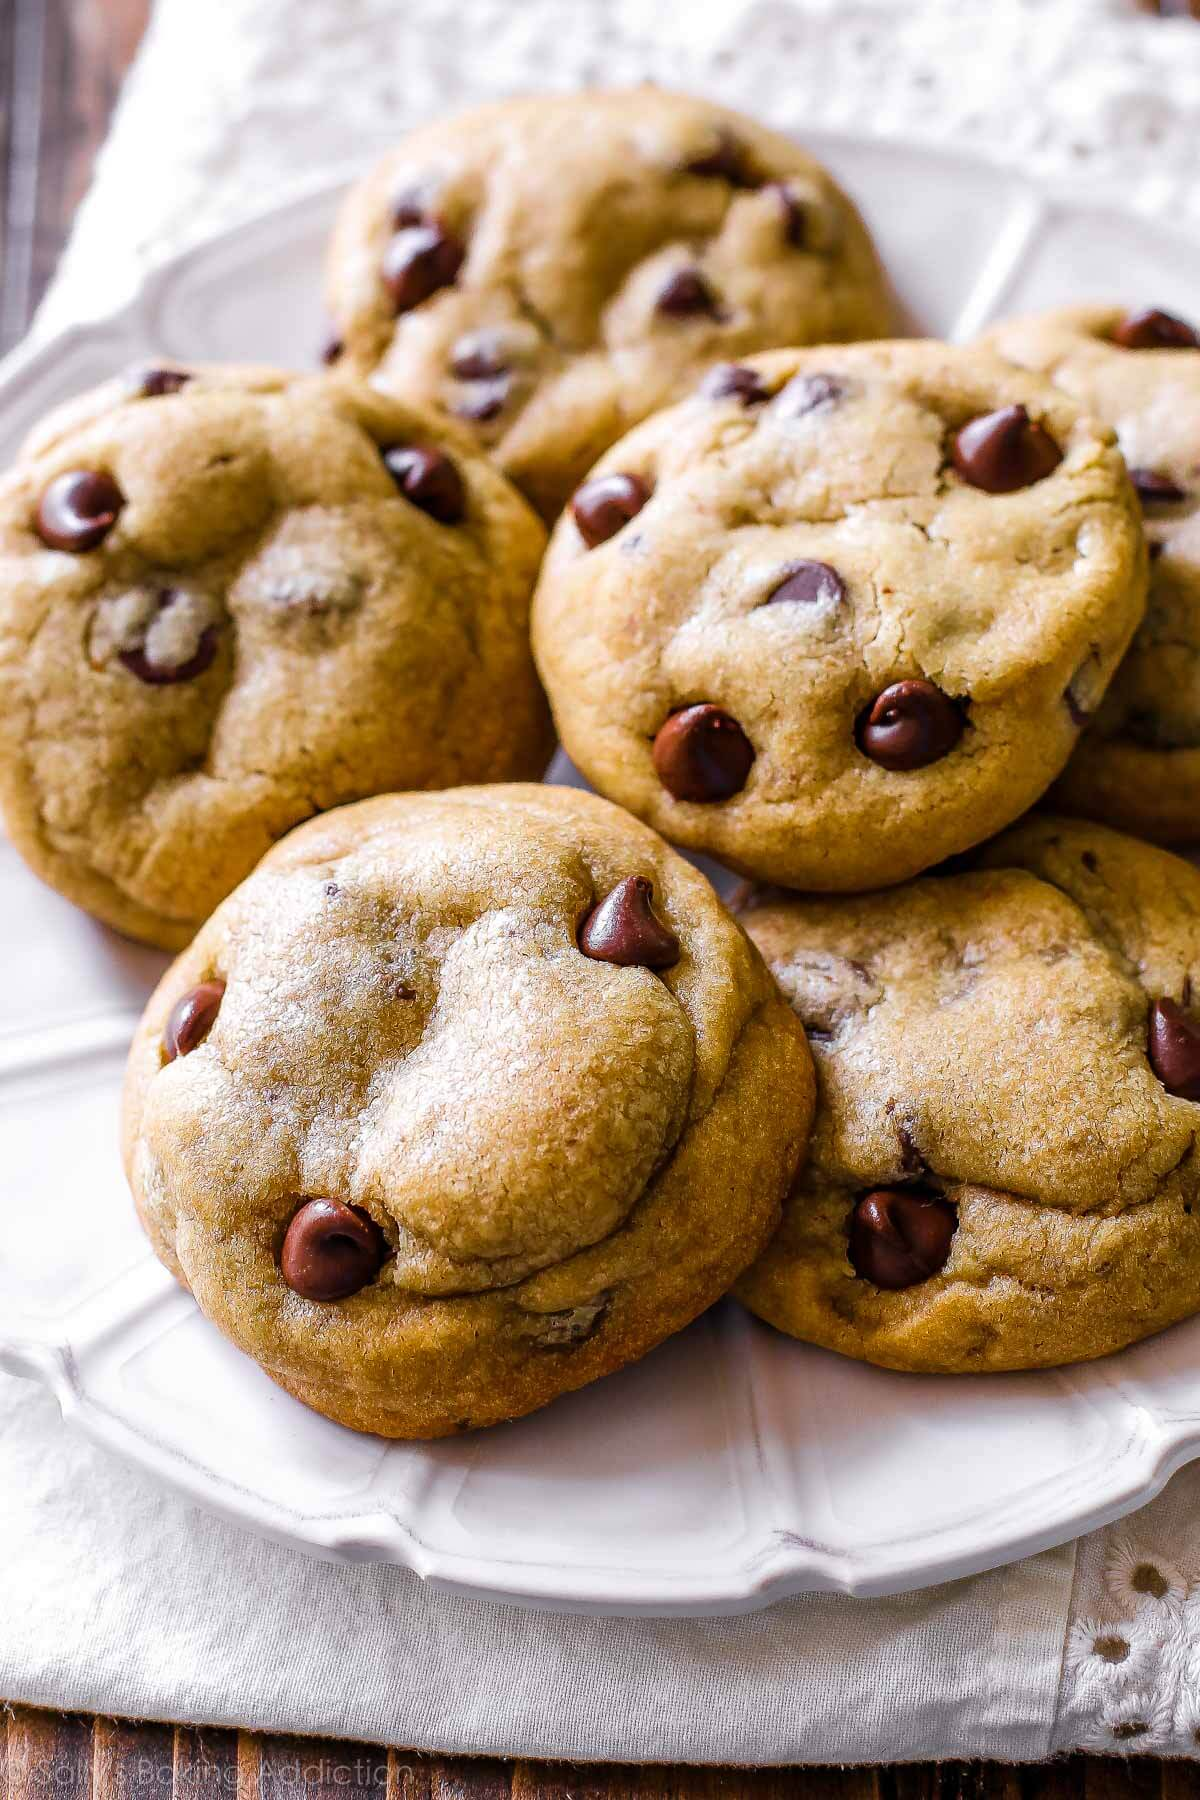 Brown Butter Chocolate Chip Cookies - Sallys Baking Addiction